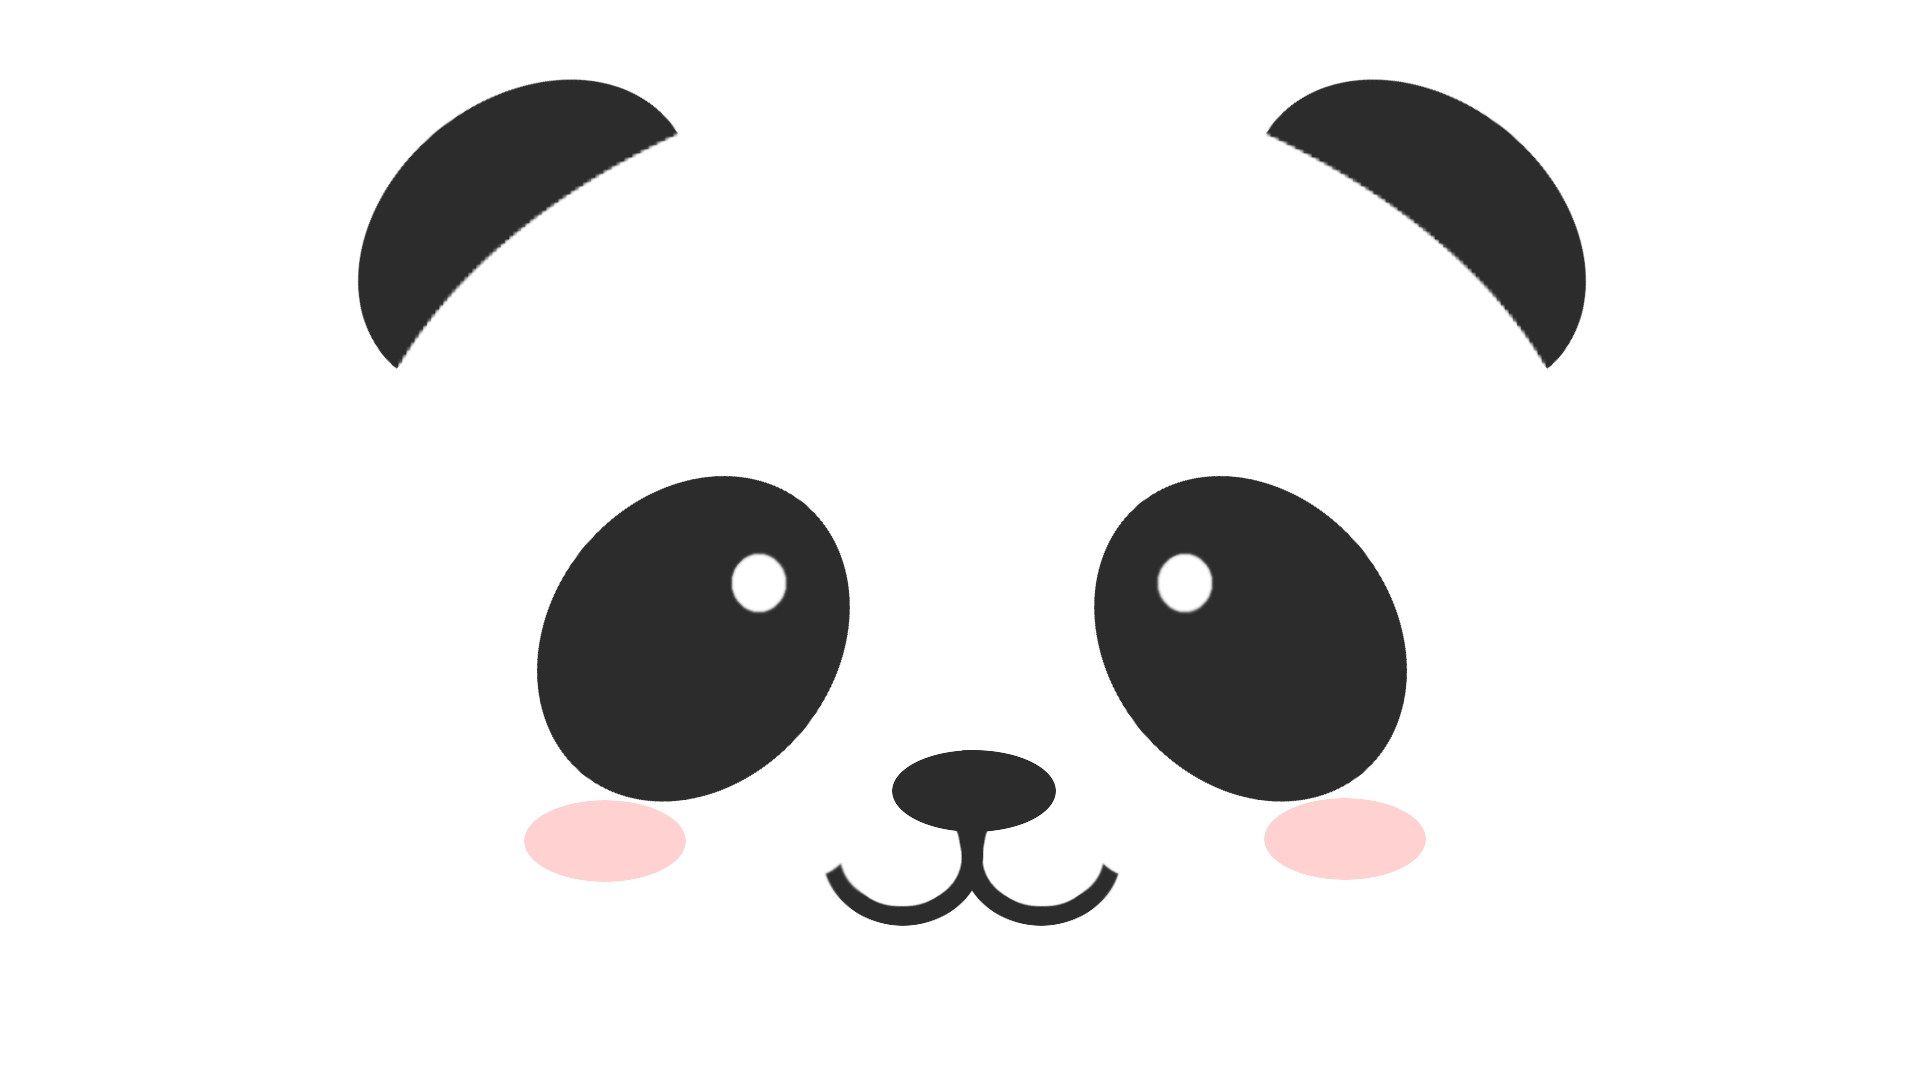 Panda Face Wallpaper